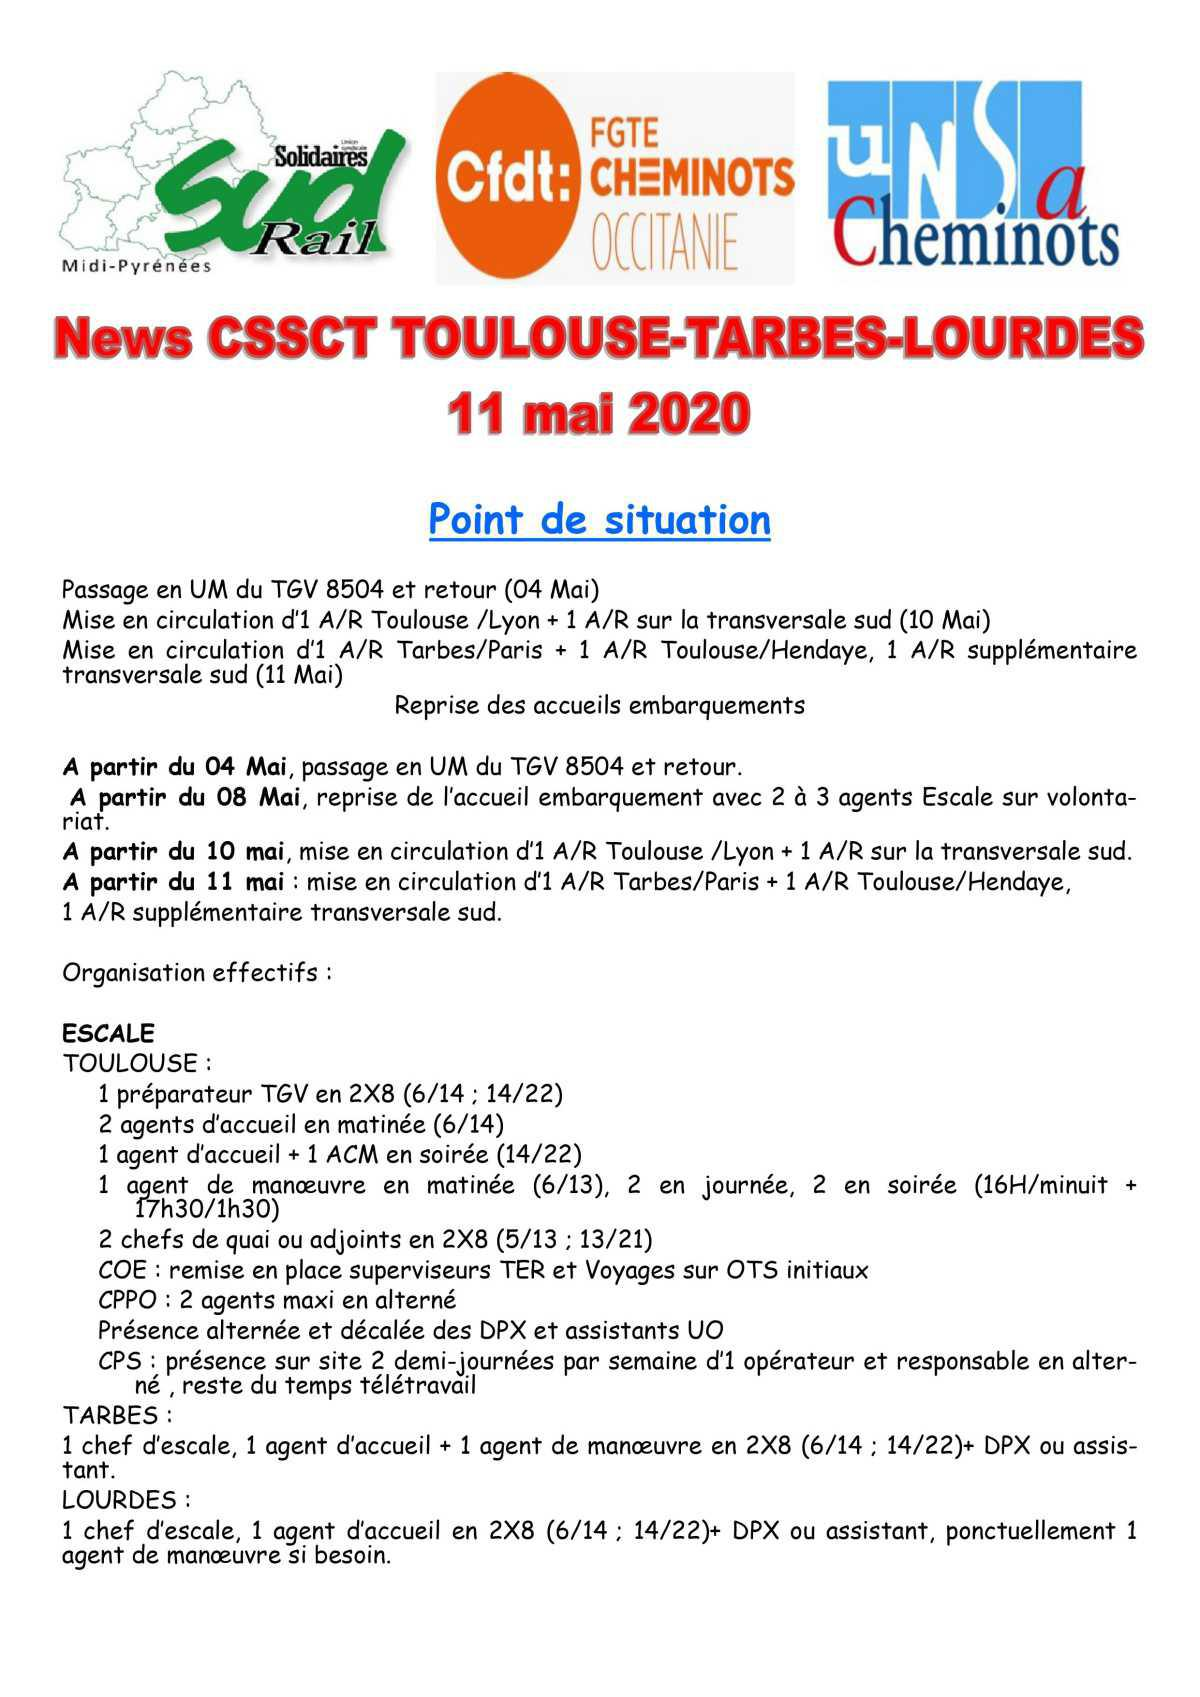 News CSSCT Toulouse-Tarbes-Lourdes